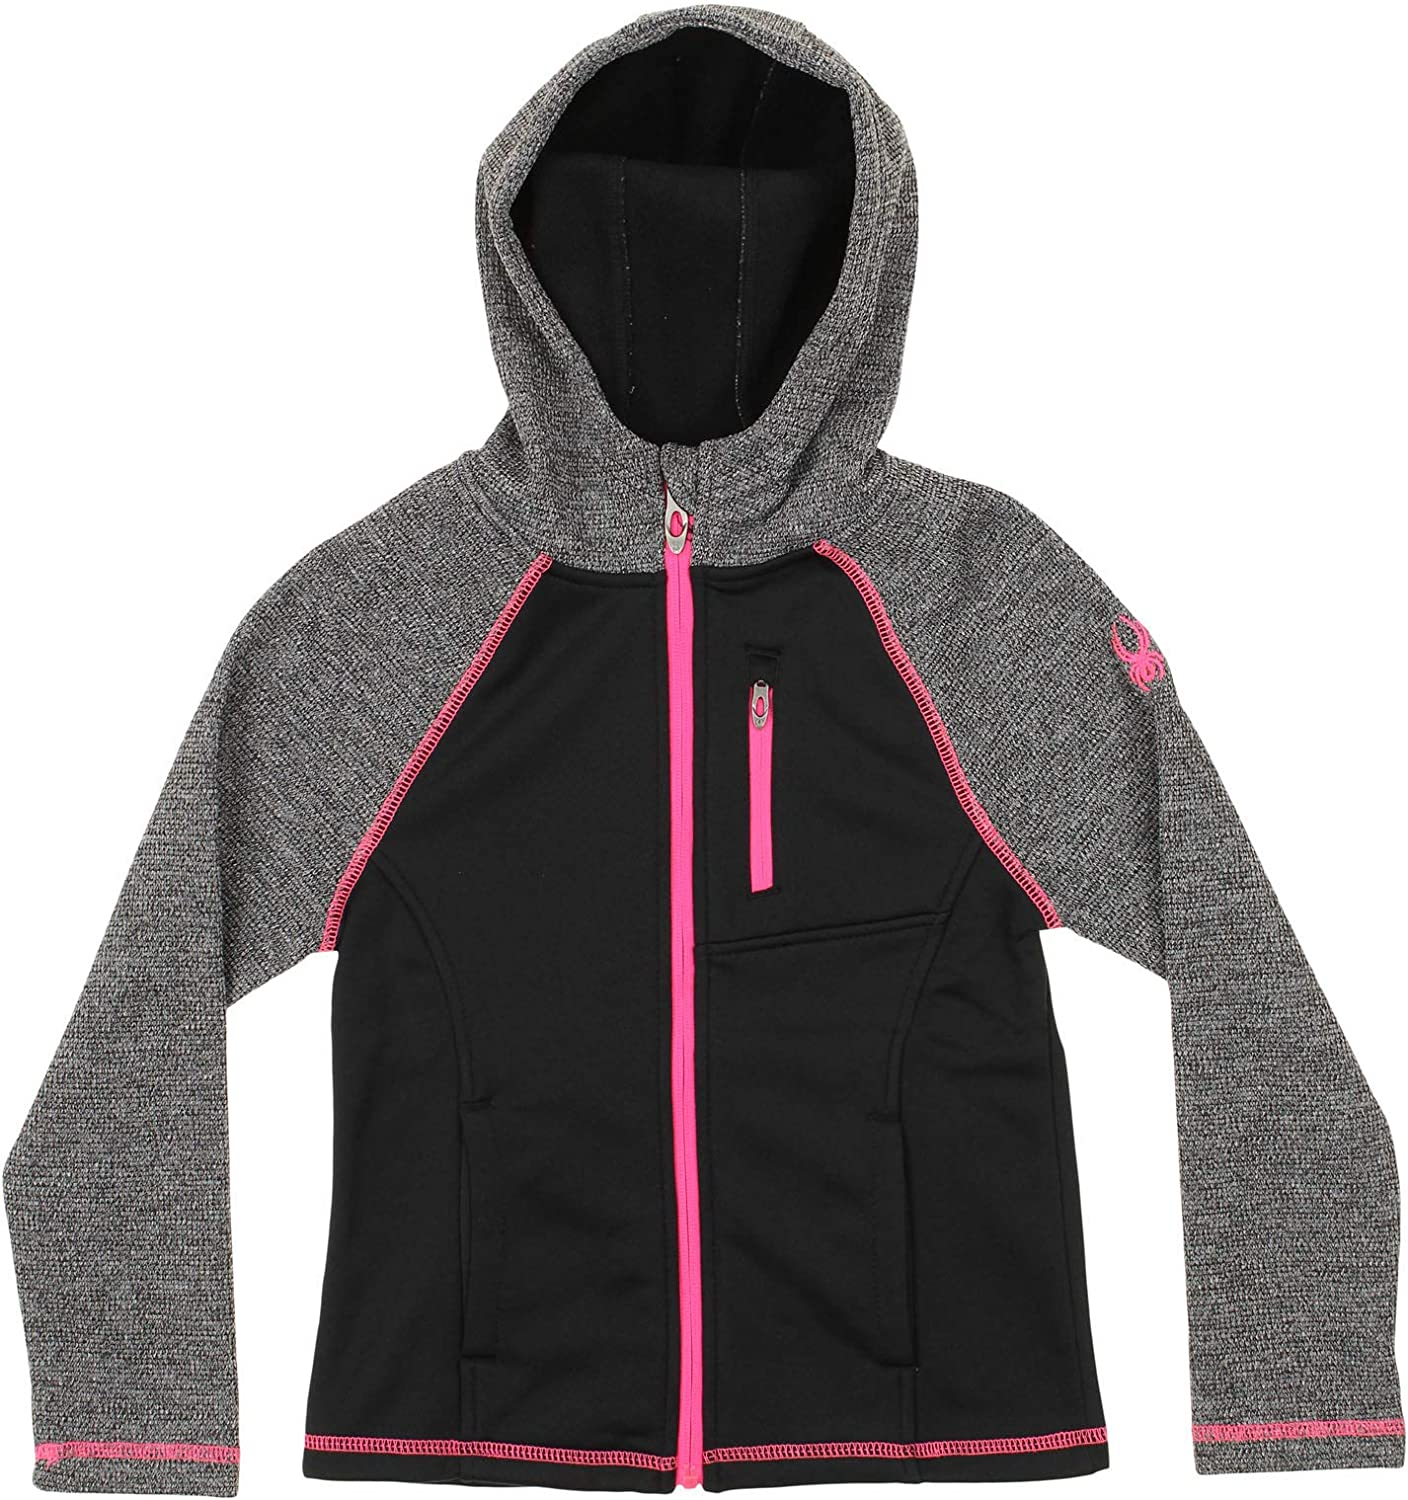 Spyder Girls Youth (7-16) Alayna Full Zip Sweater Hoodie, Color Variation